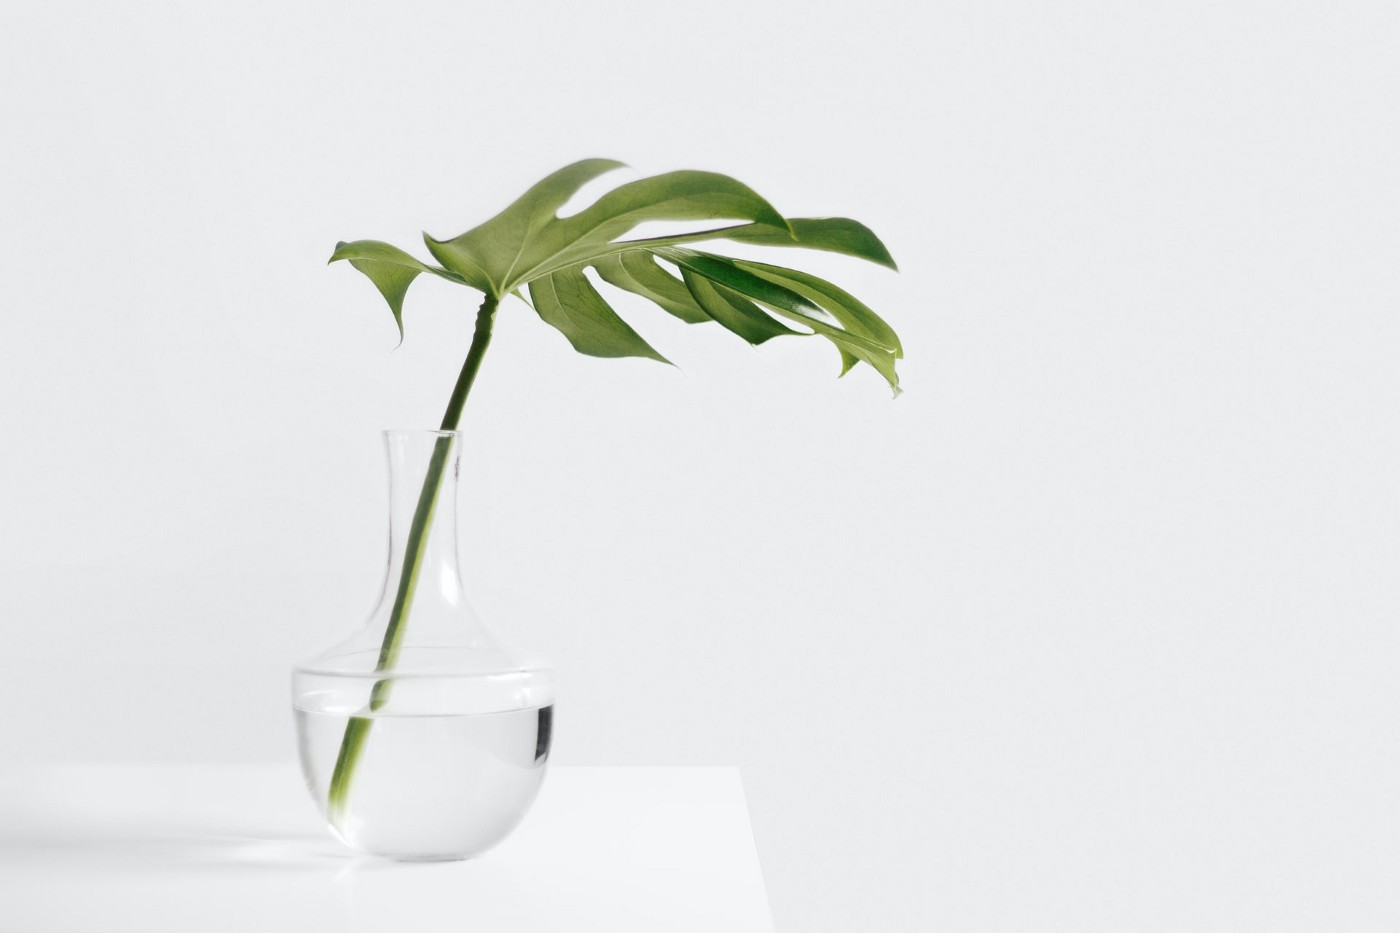 A plant in a glass vase filed with water